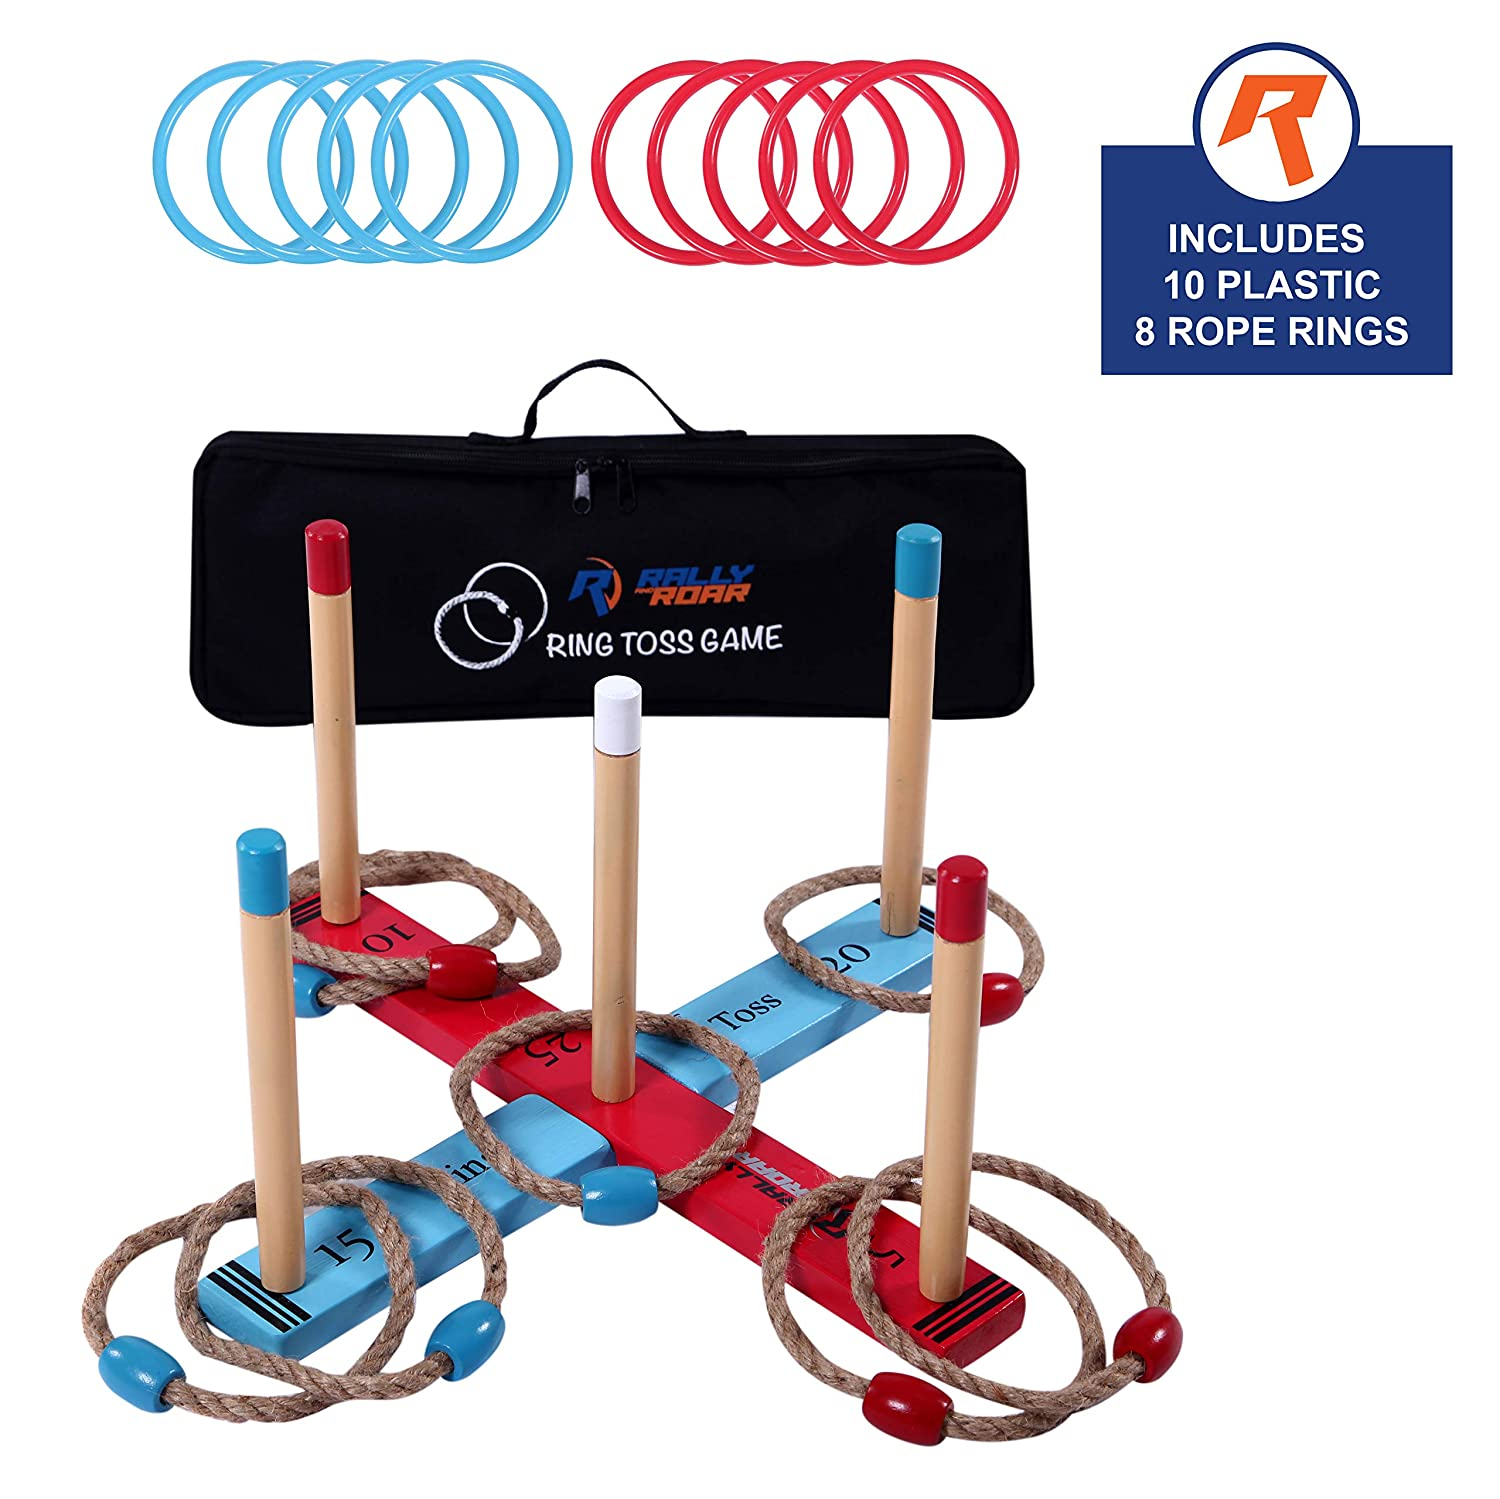 Outdoor Ring Toss Game by Rally & Roar for Adults and Kids...